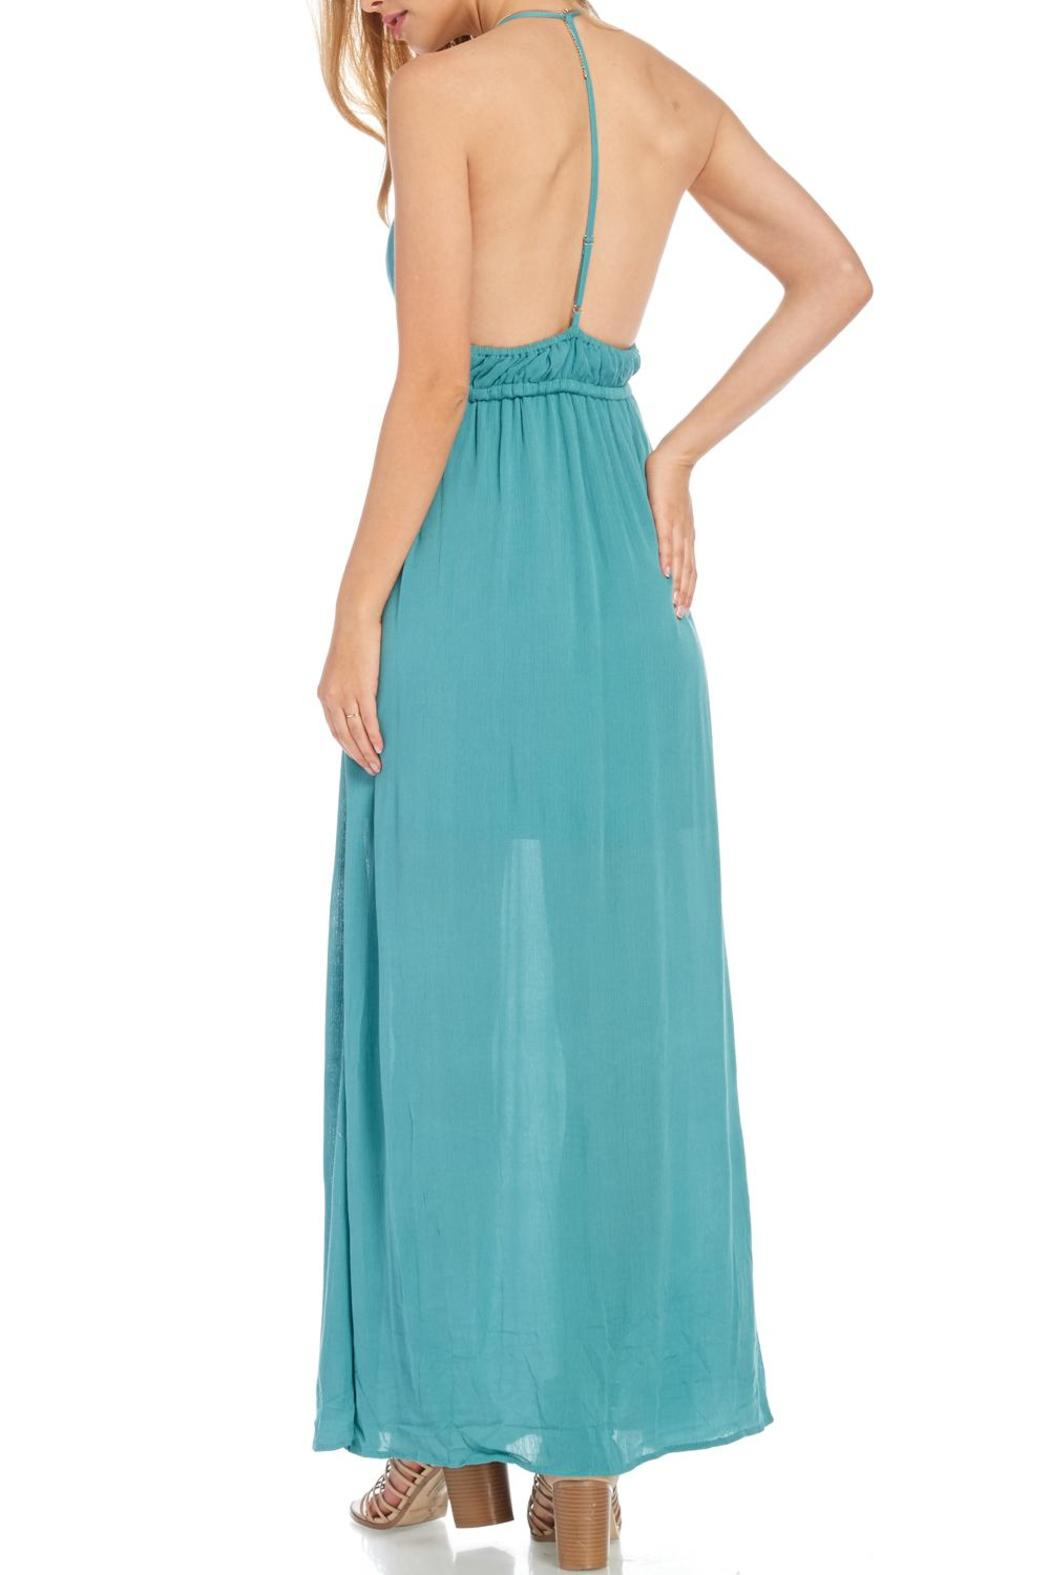 HYFVE Turquoise Maxi Dress from Nebraska by Apricot Lane - Omaha ...